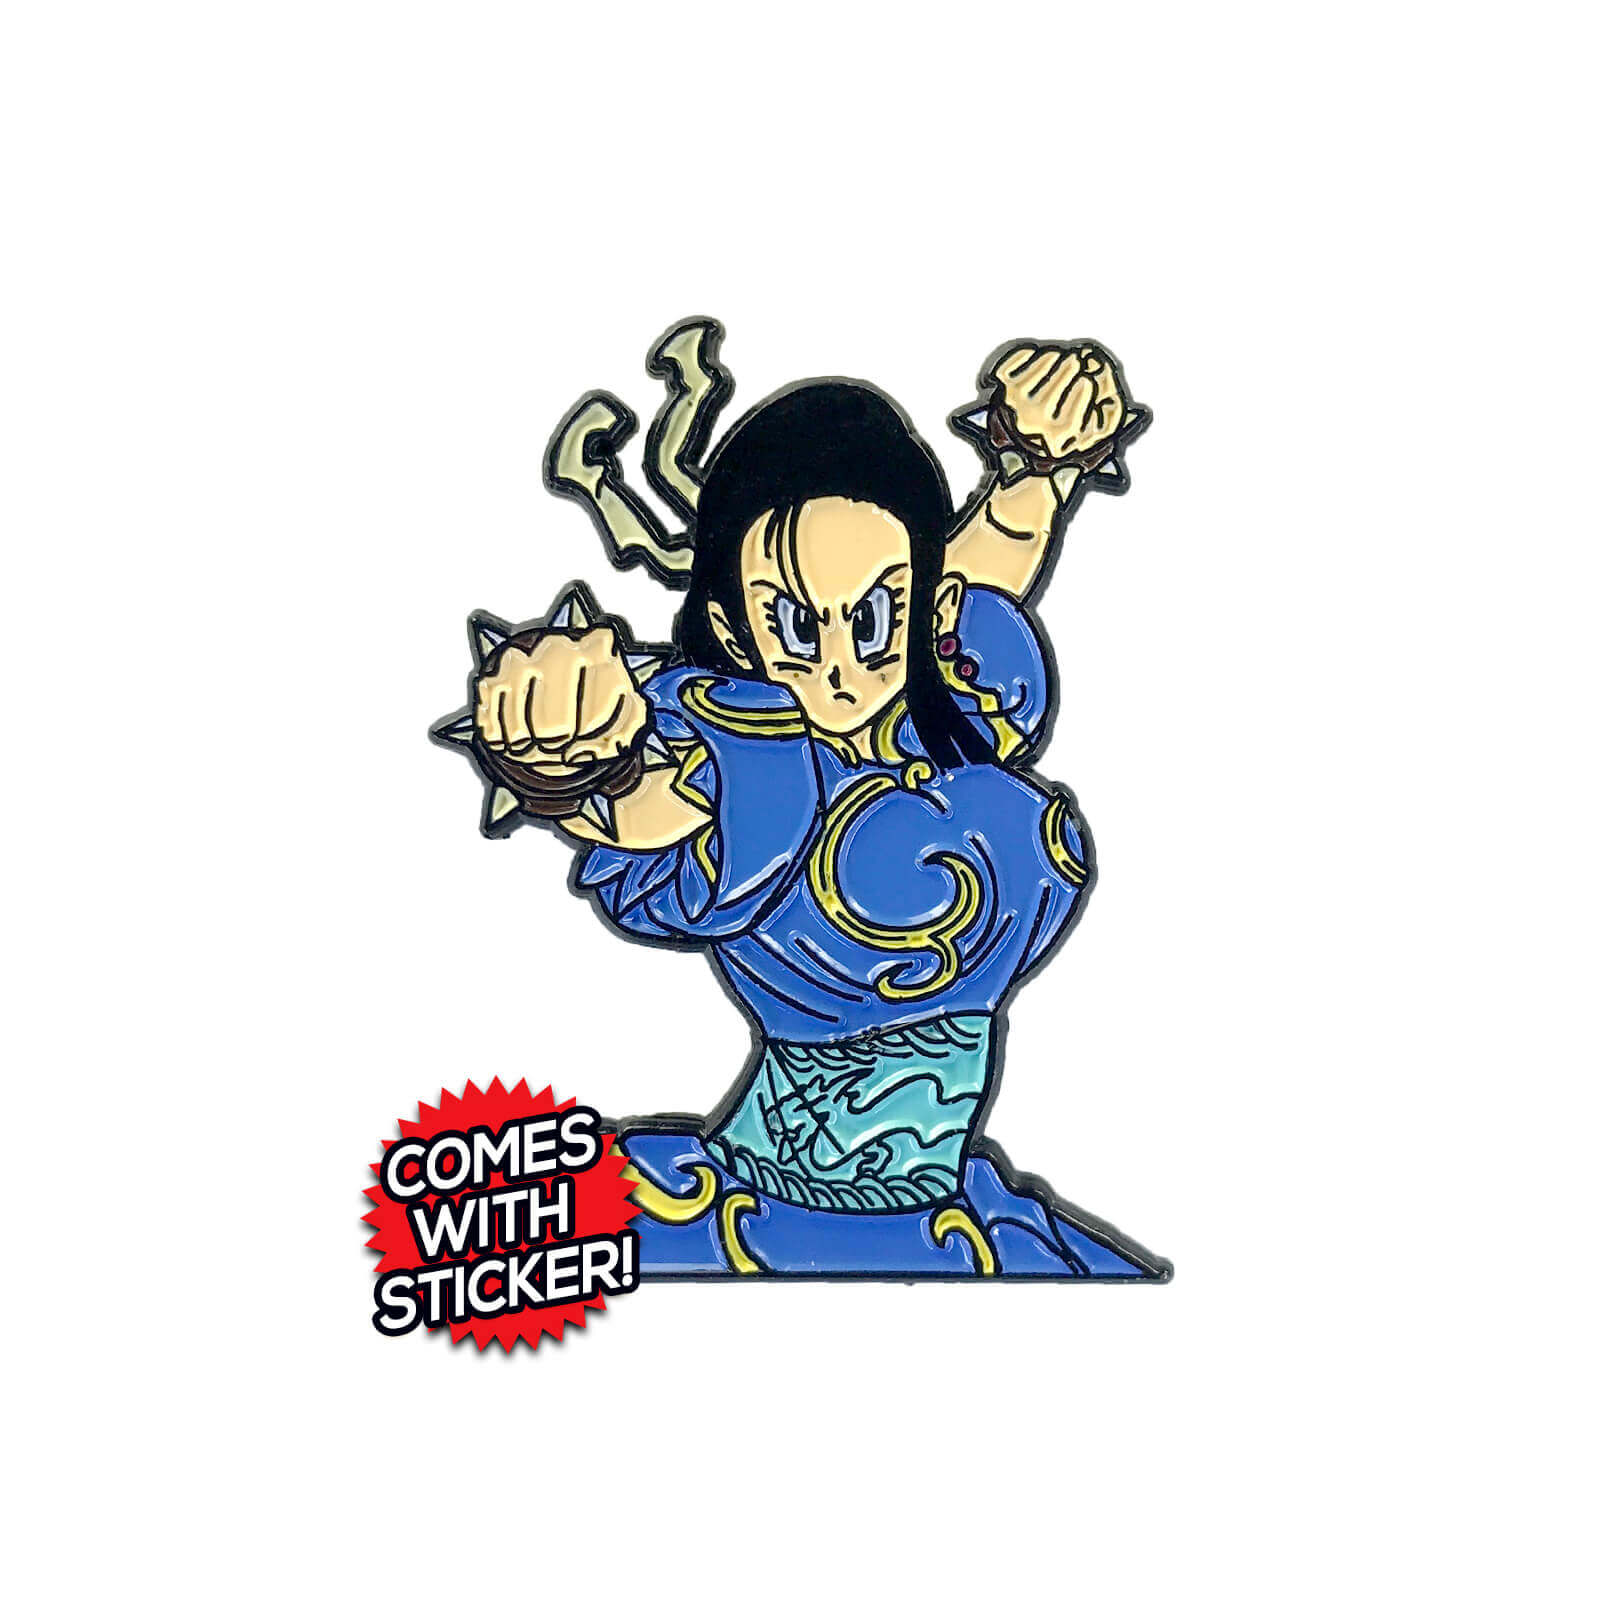 Chun-Chi (Street Fighter x Dragon Ball Z Mashup) Enamel Pin